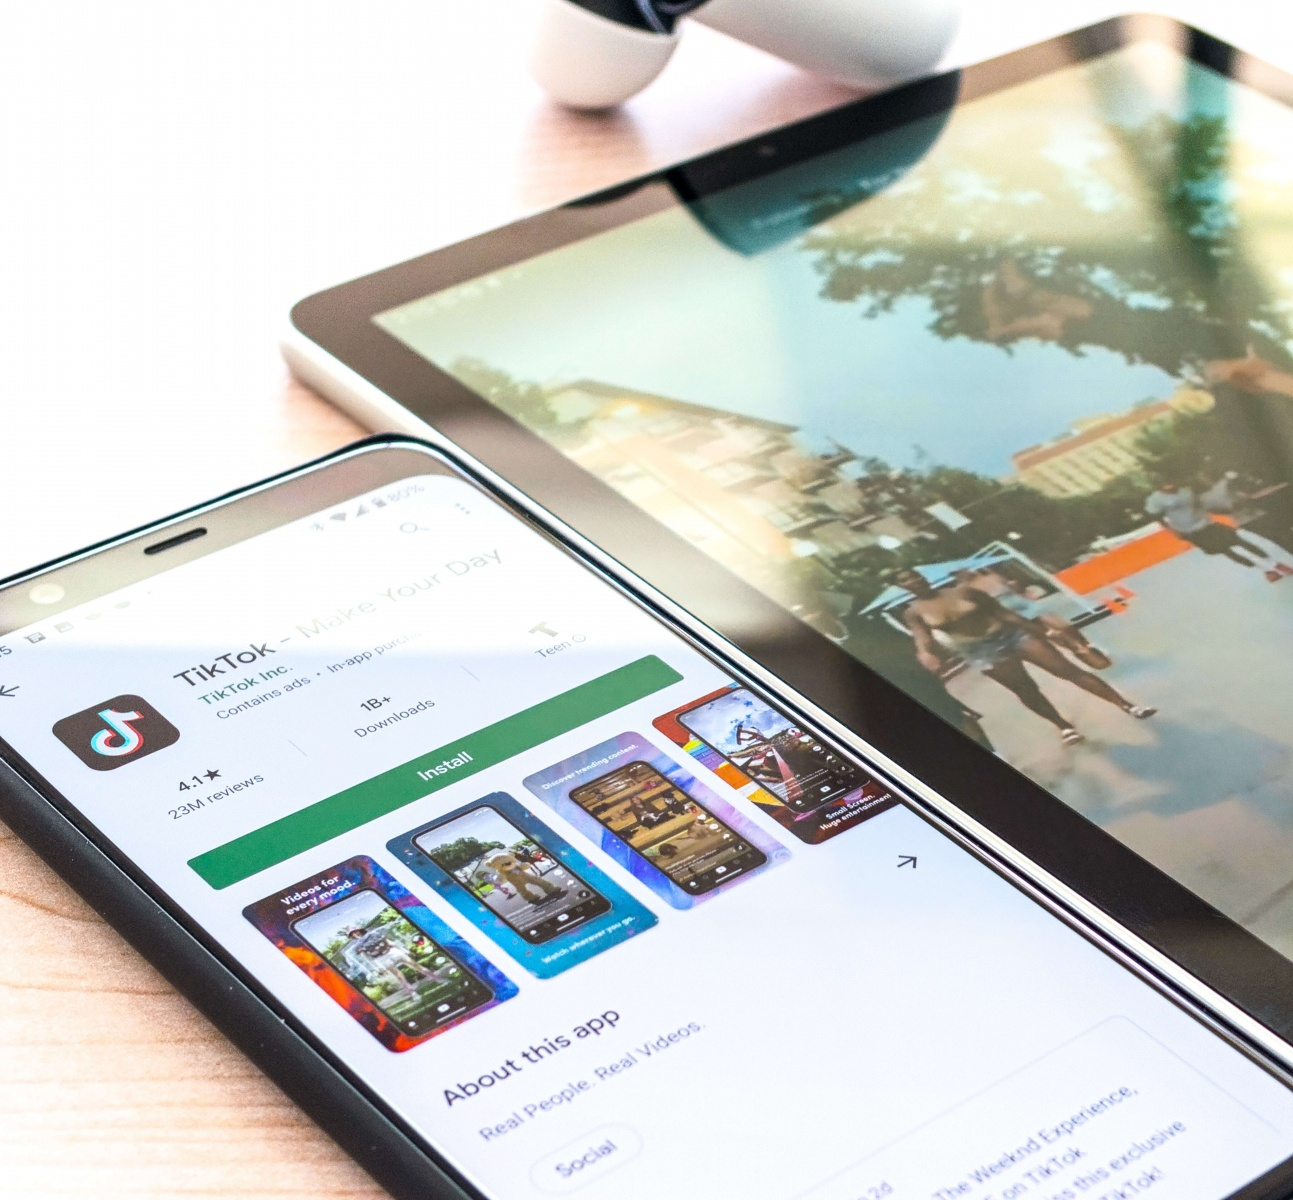 Google Play Store App Customized for Country-Specific and Device-Specific Ratings